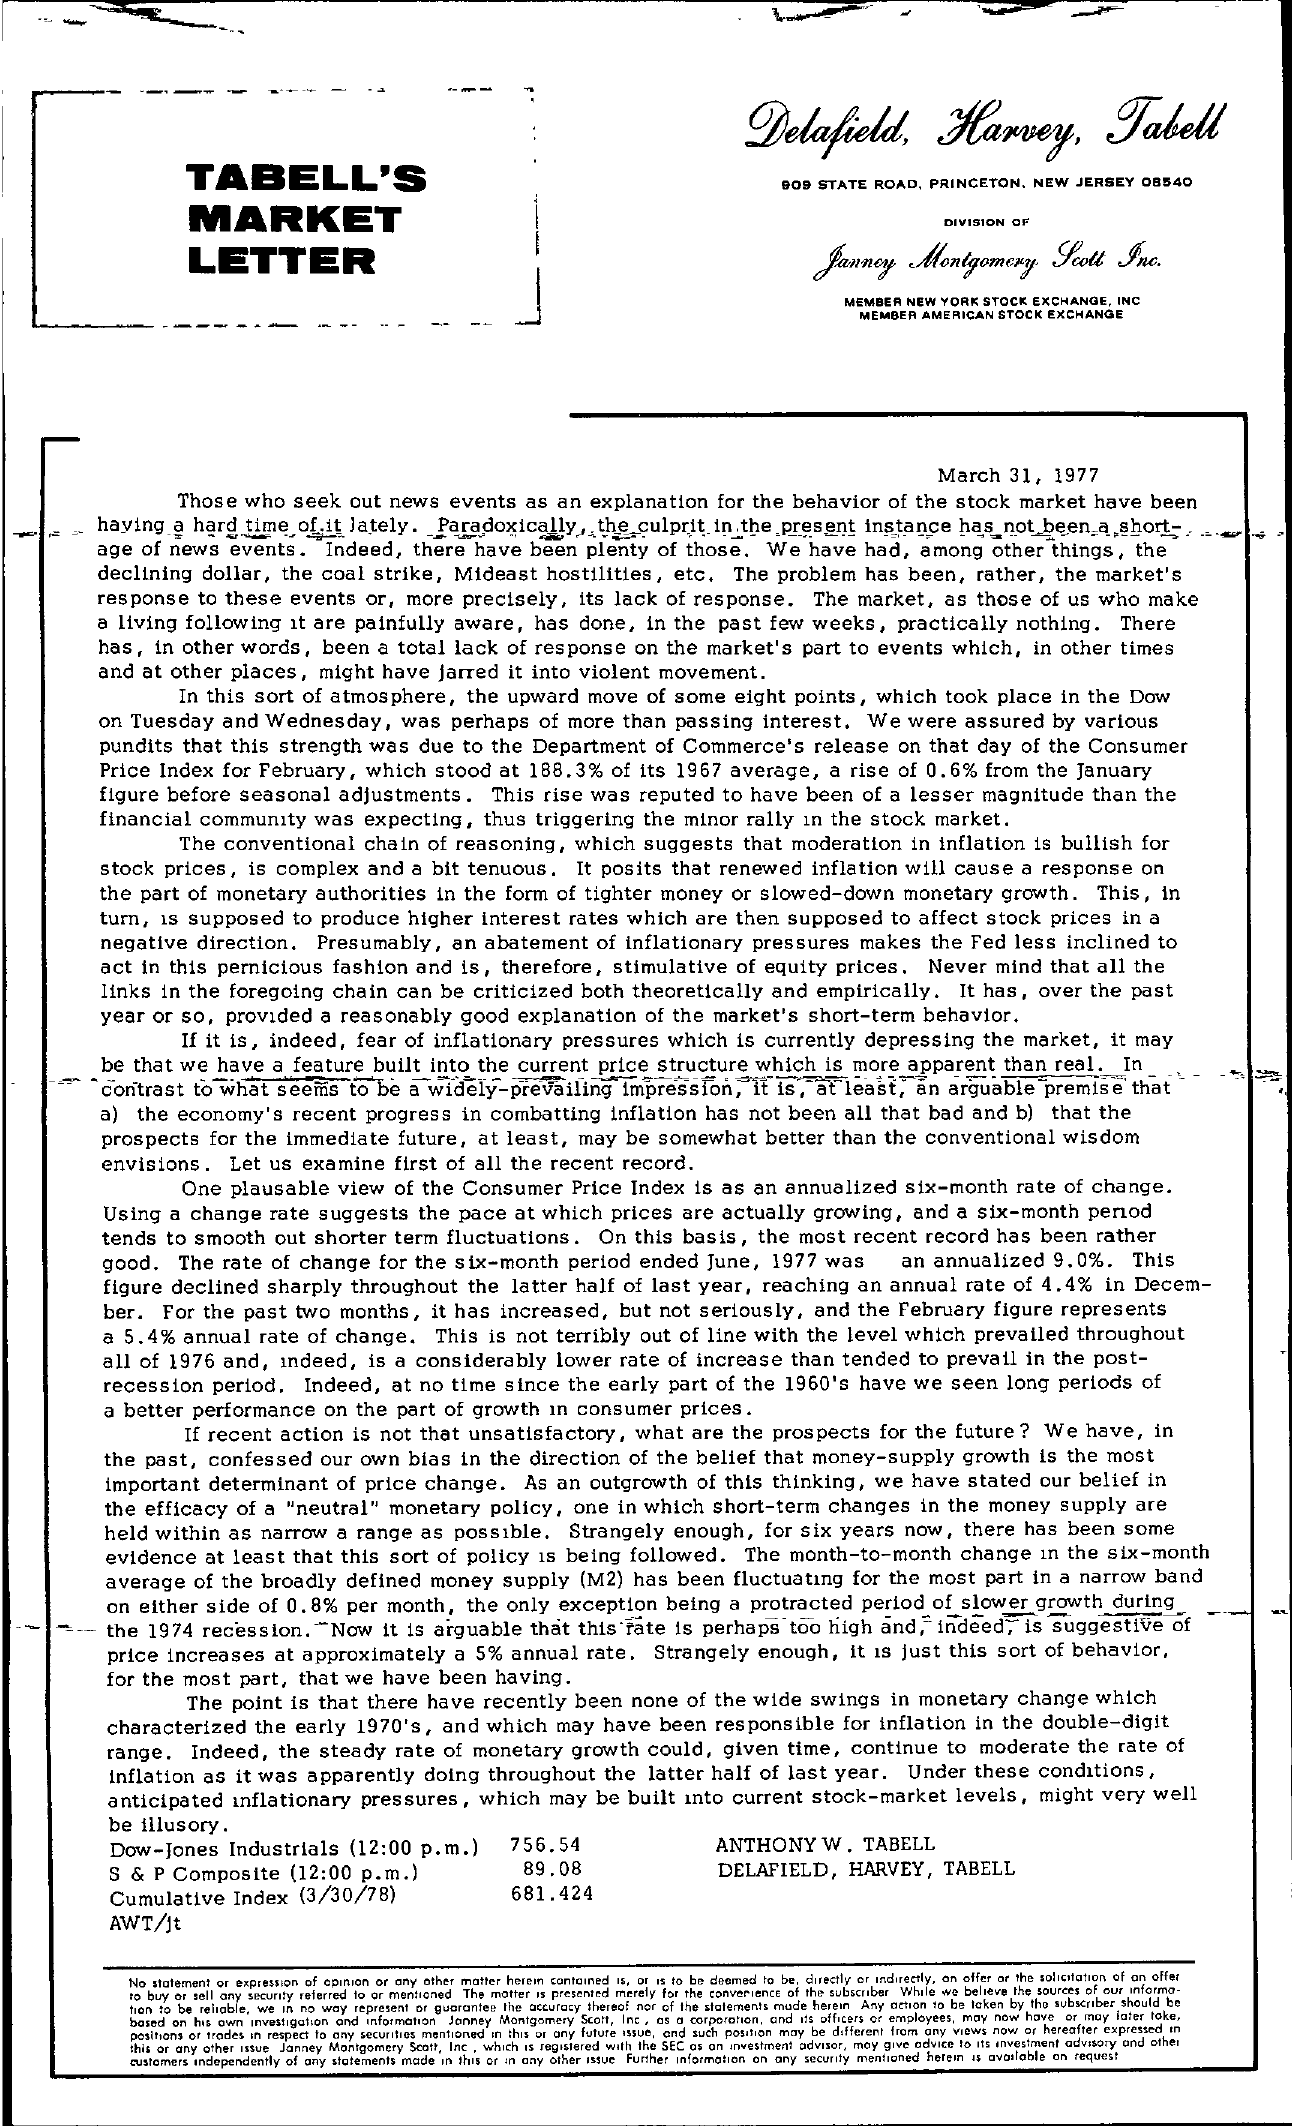 Tabell's Market Letter - March 31, 1977